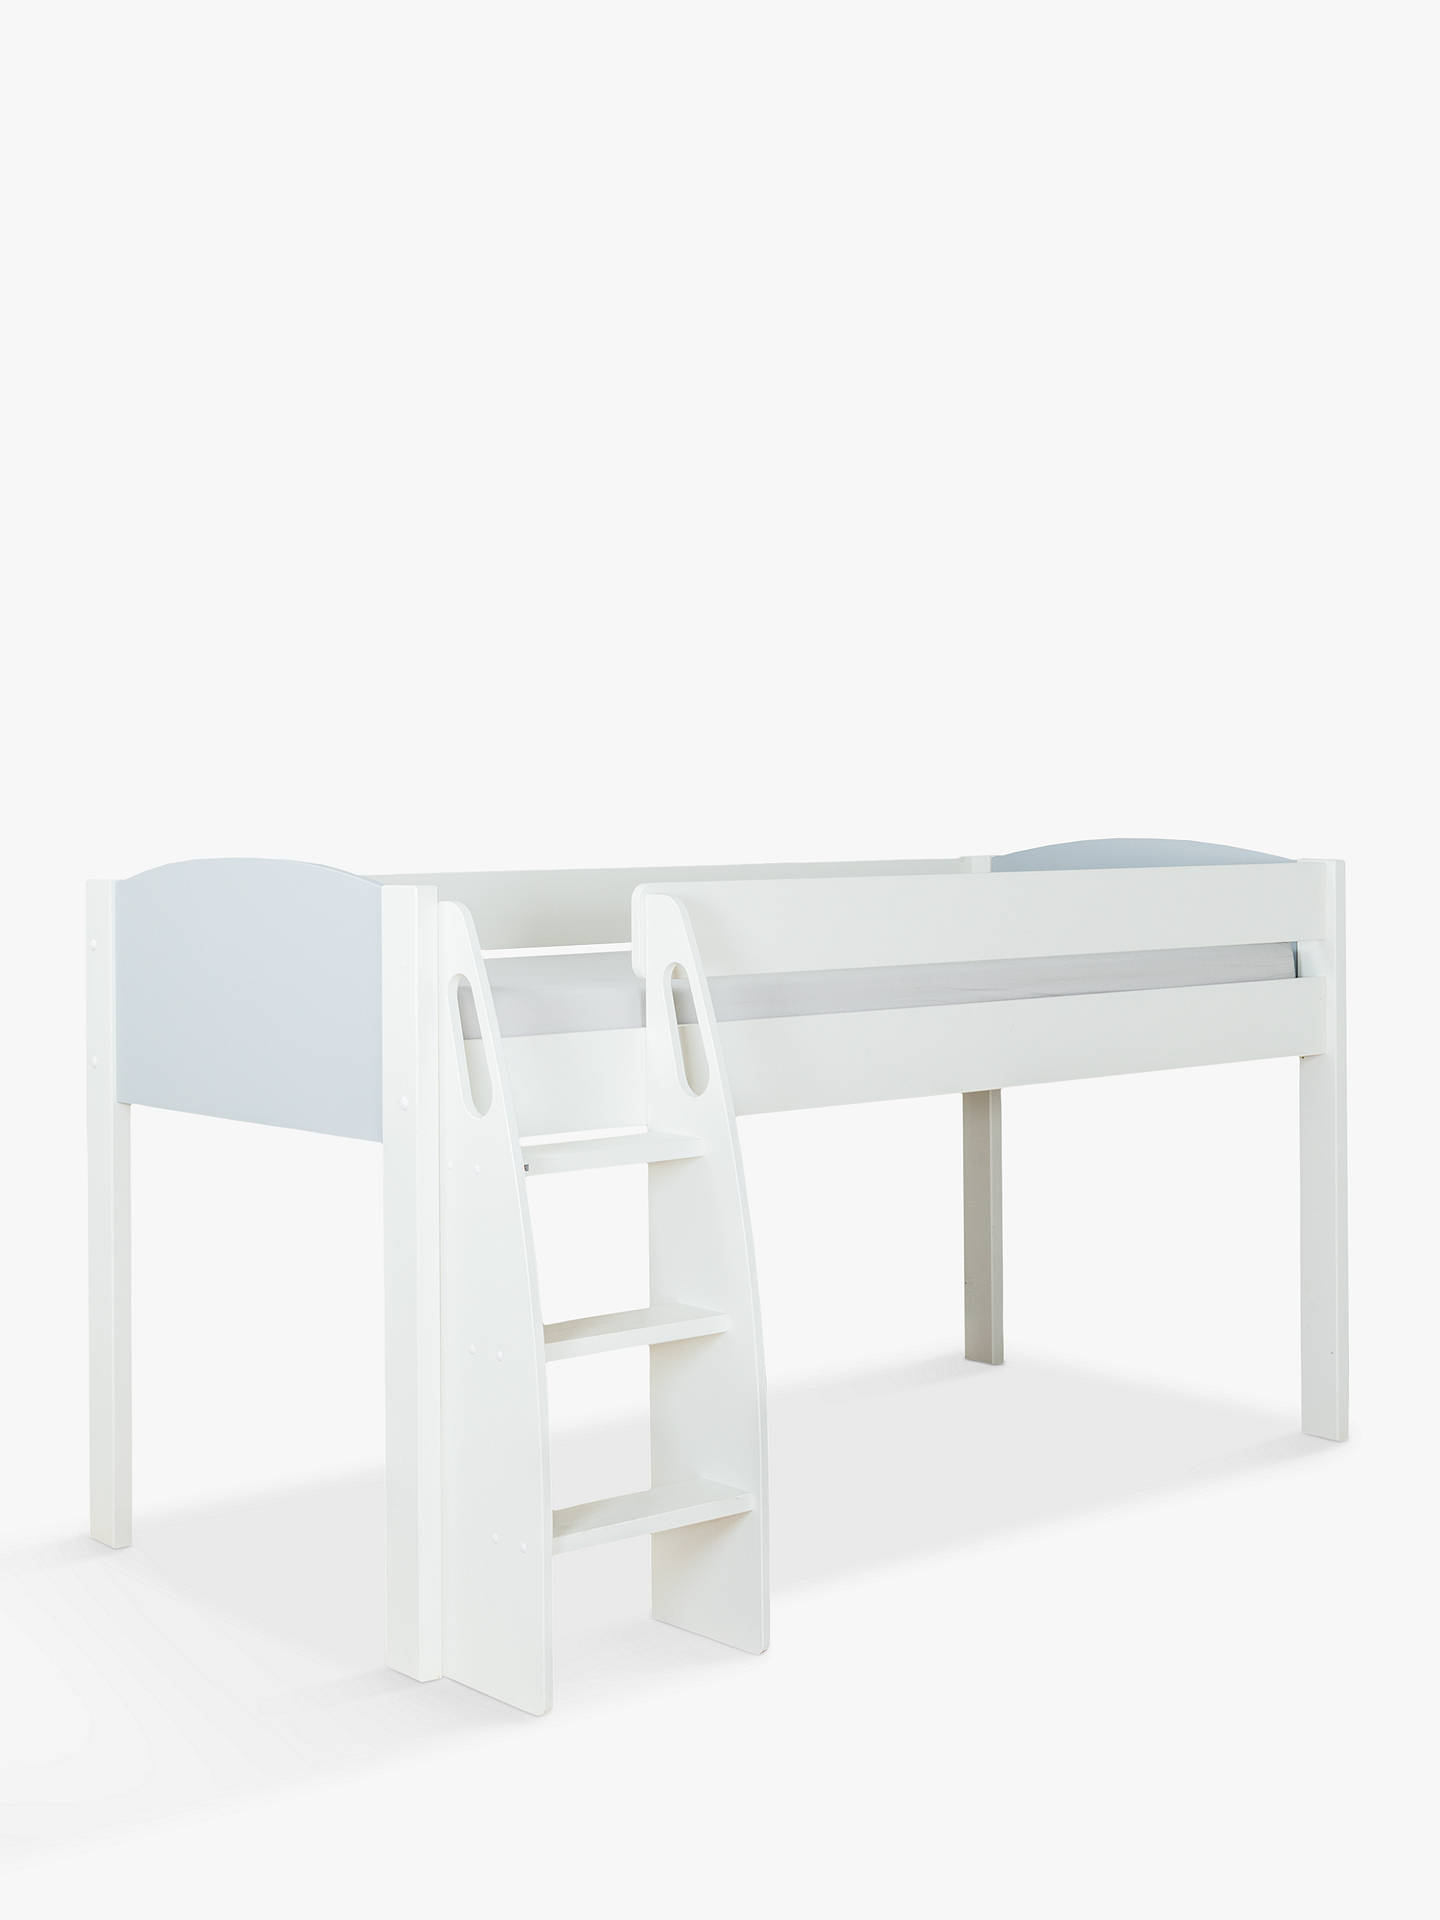 Buy Stompa Uno S Plus Mid-sleeper Bed Frame, White/Grey Online at johnlewis.com